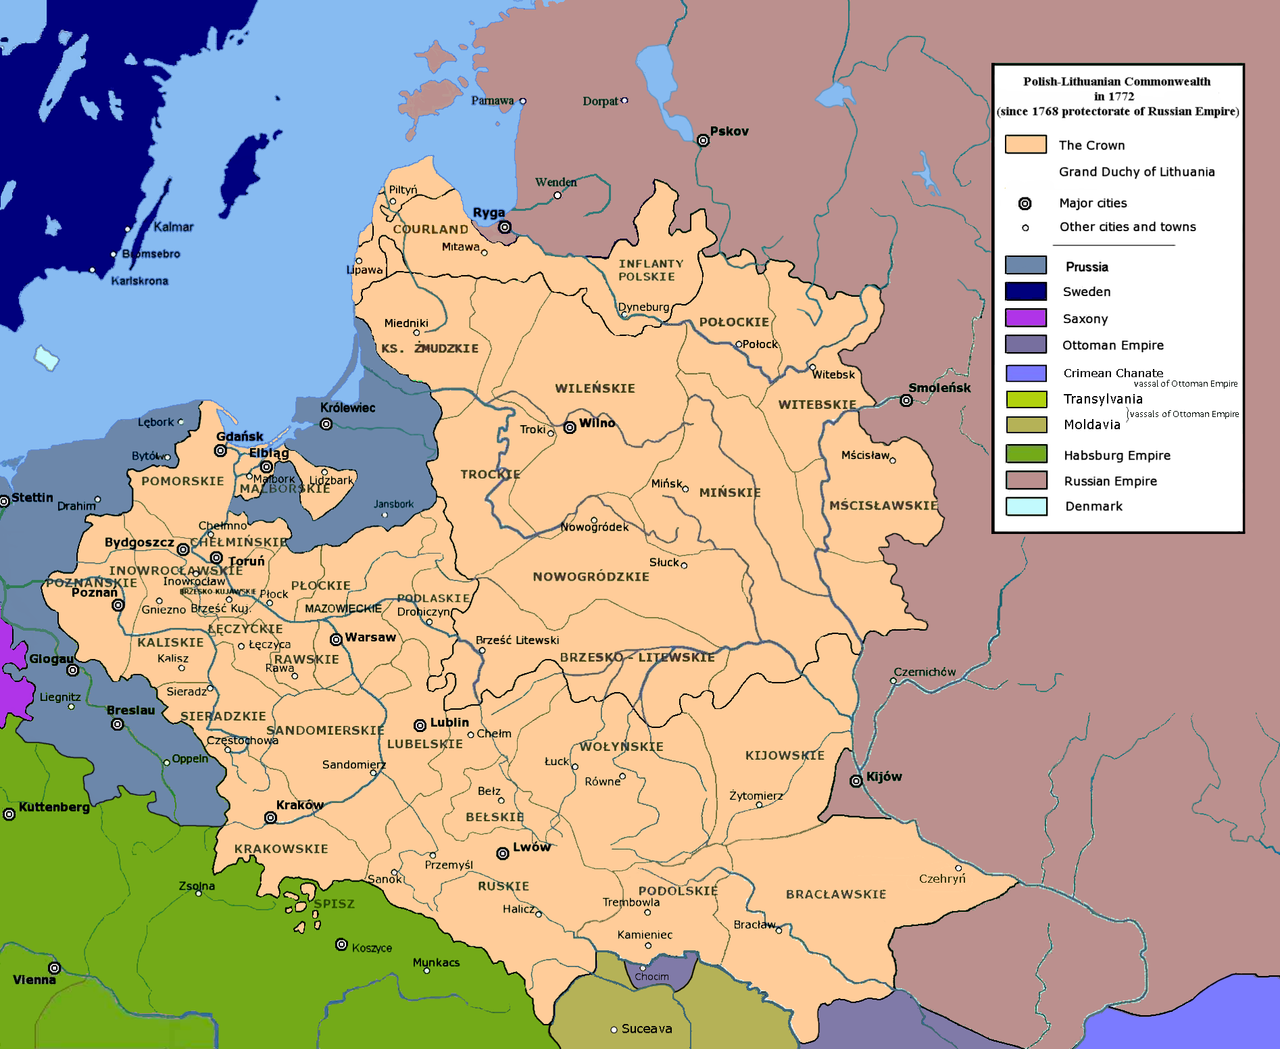 https://upload.wikimedia.org/wikipedia/commons/thumb/b/b0/Polish-Lithuanian_Commonwealth_in_1772.PNG/1280px-Polish-Lithuanian_Commonwealth_in_1772.PNG